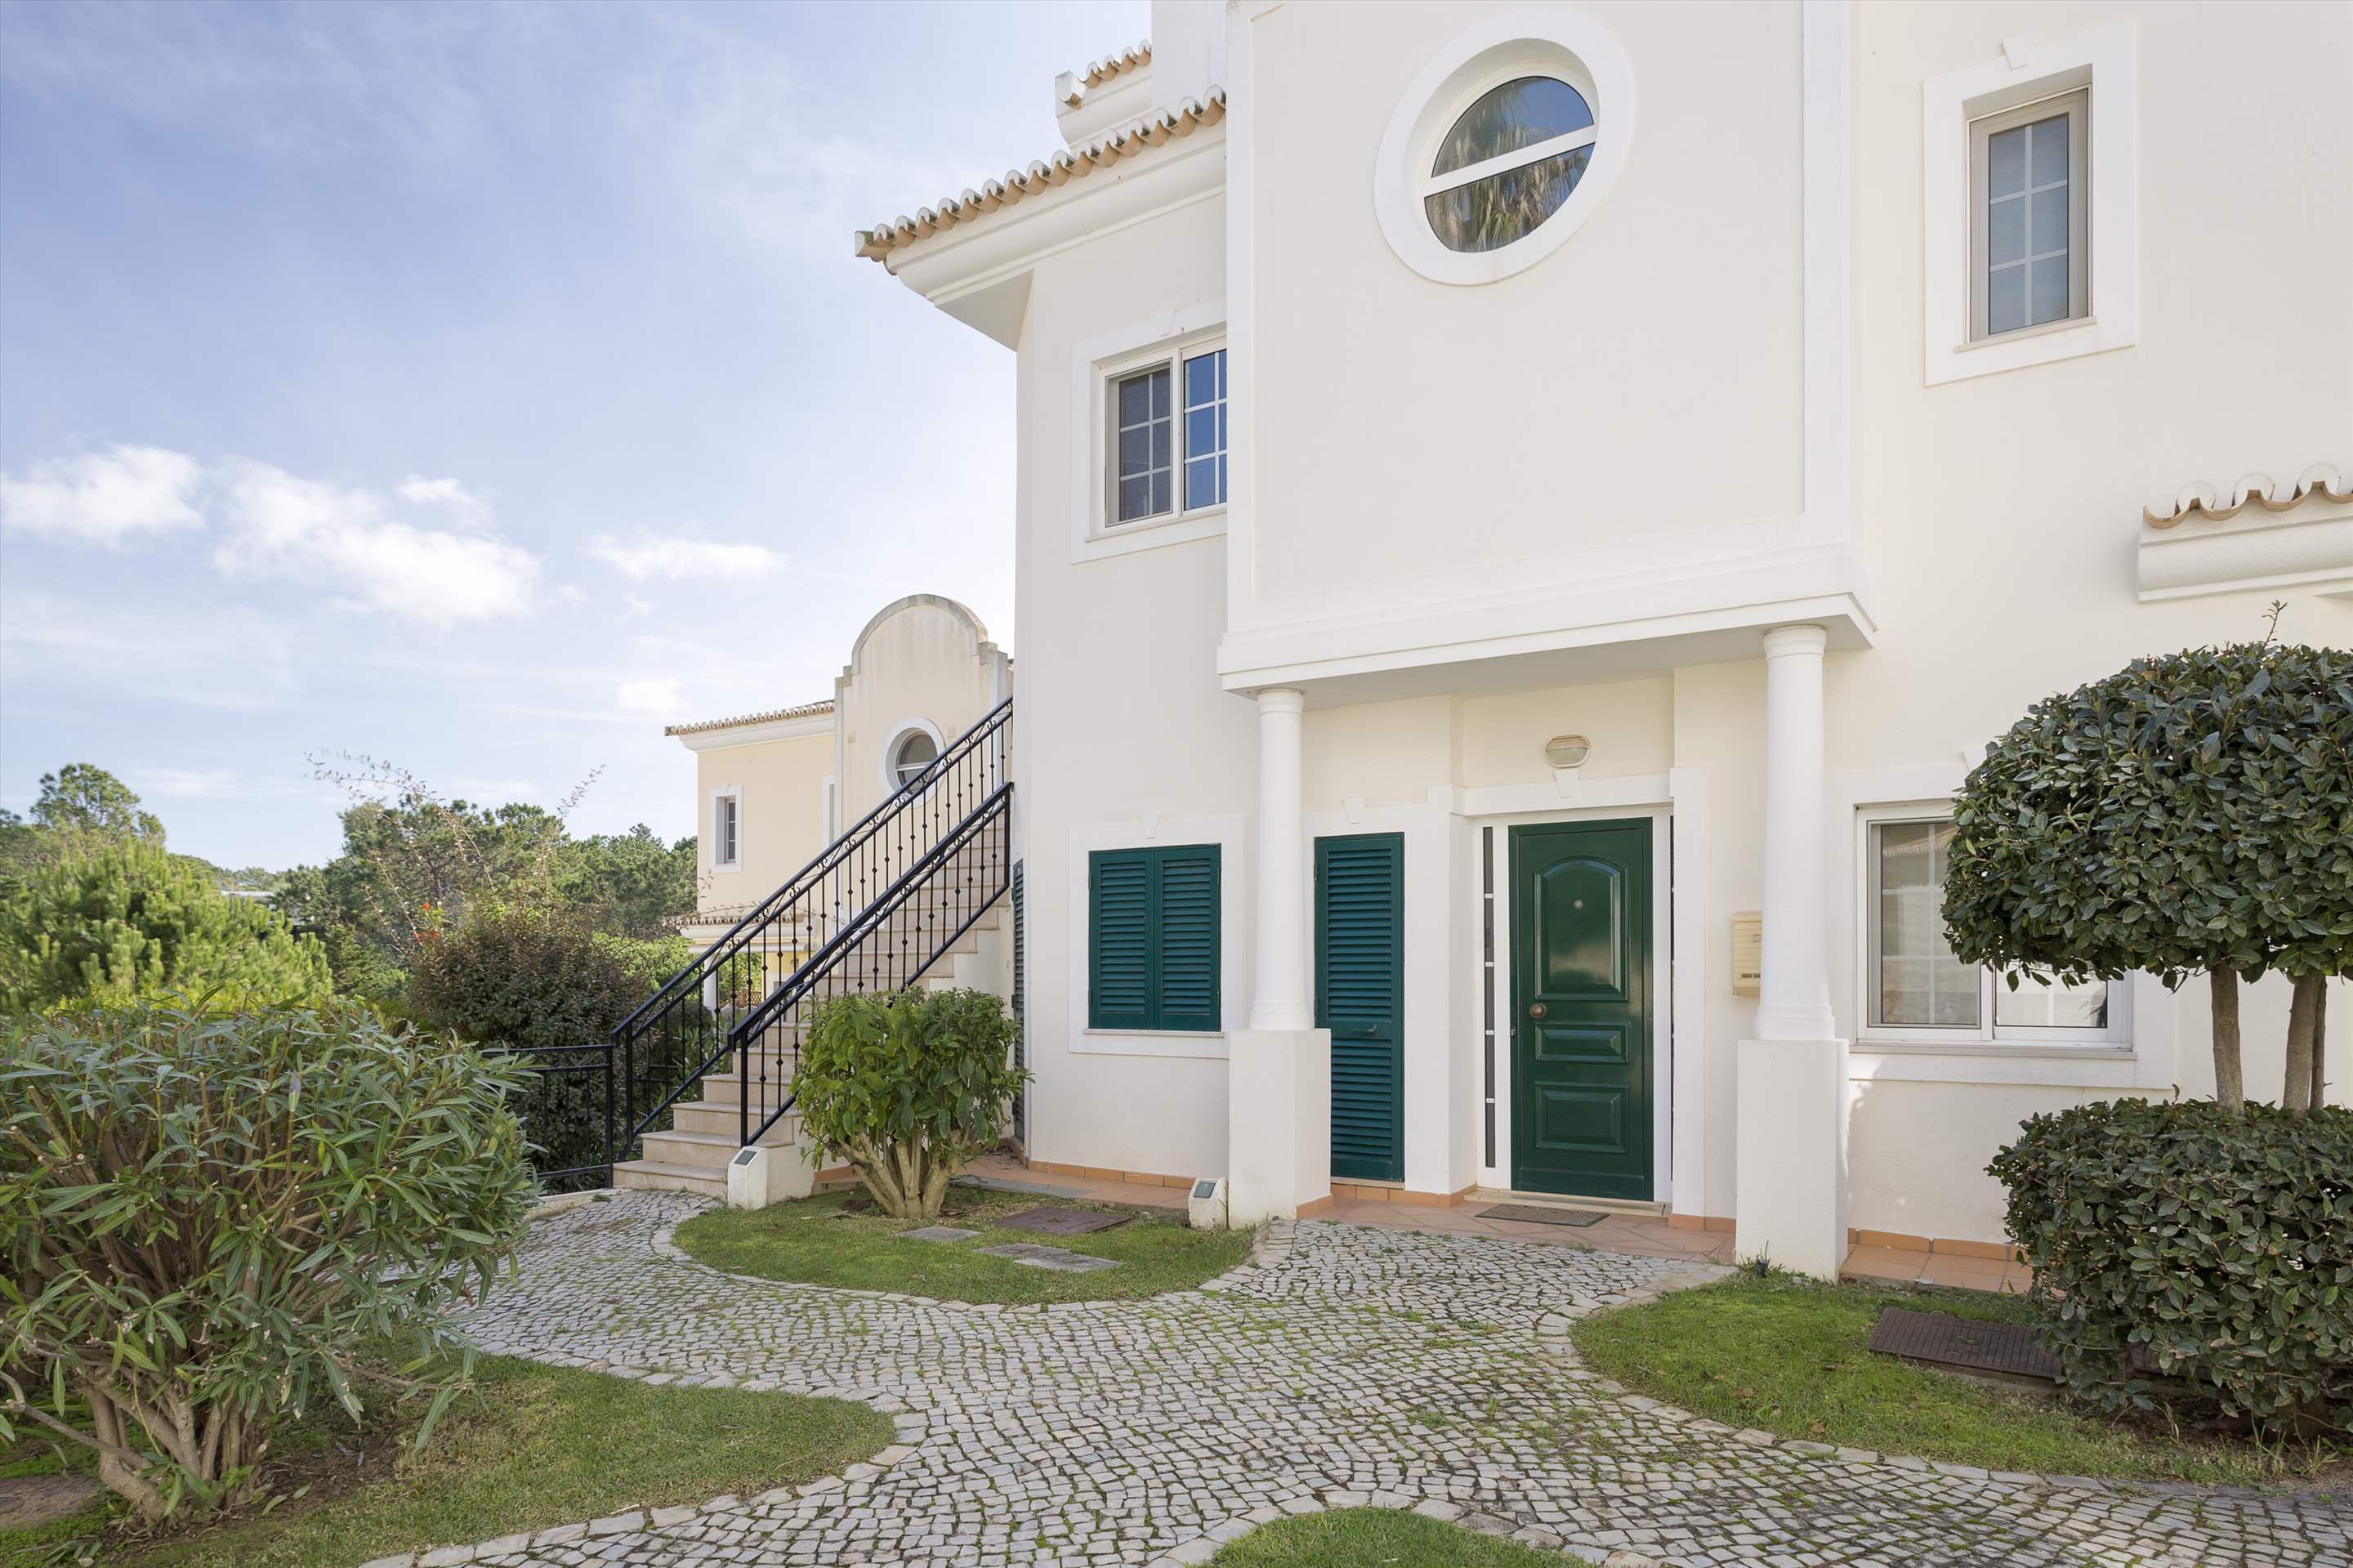 Apt 983A, 2 bedroom apartment in Vale do Lobo, Algarve Photo #12